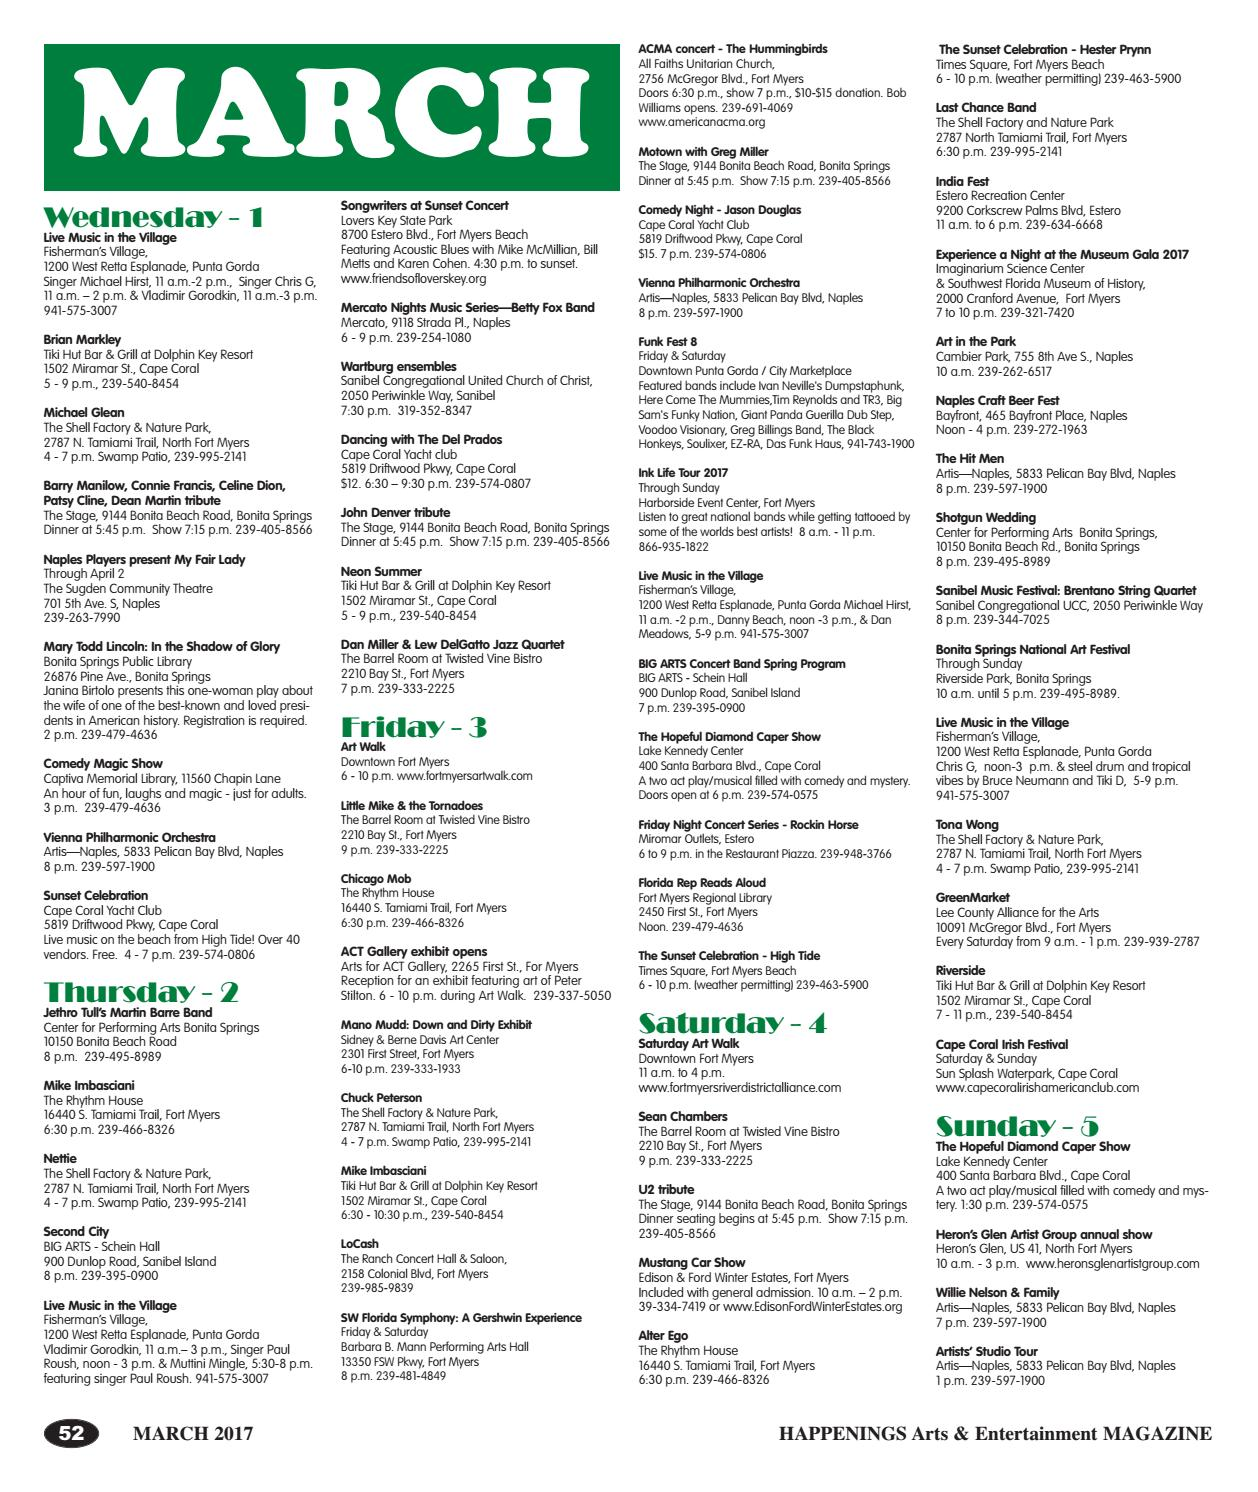 March 2017 Happenings Magazine by SW FL Happenings Magazine